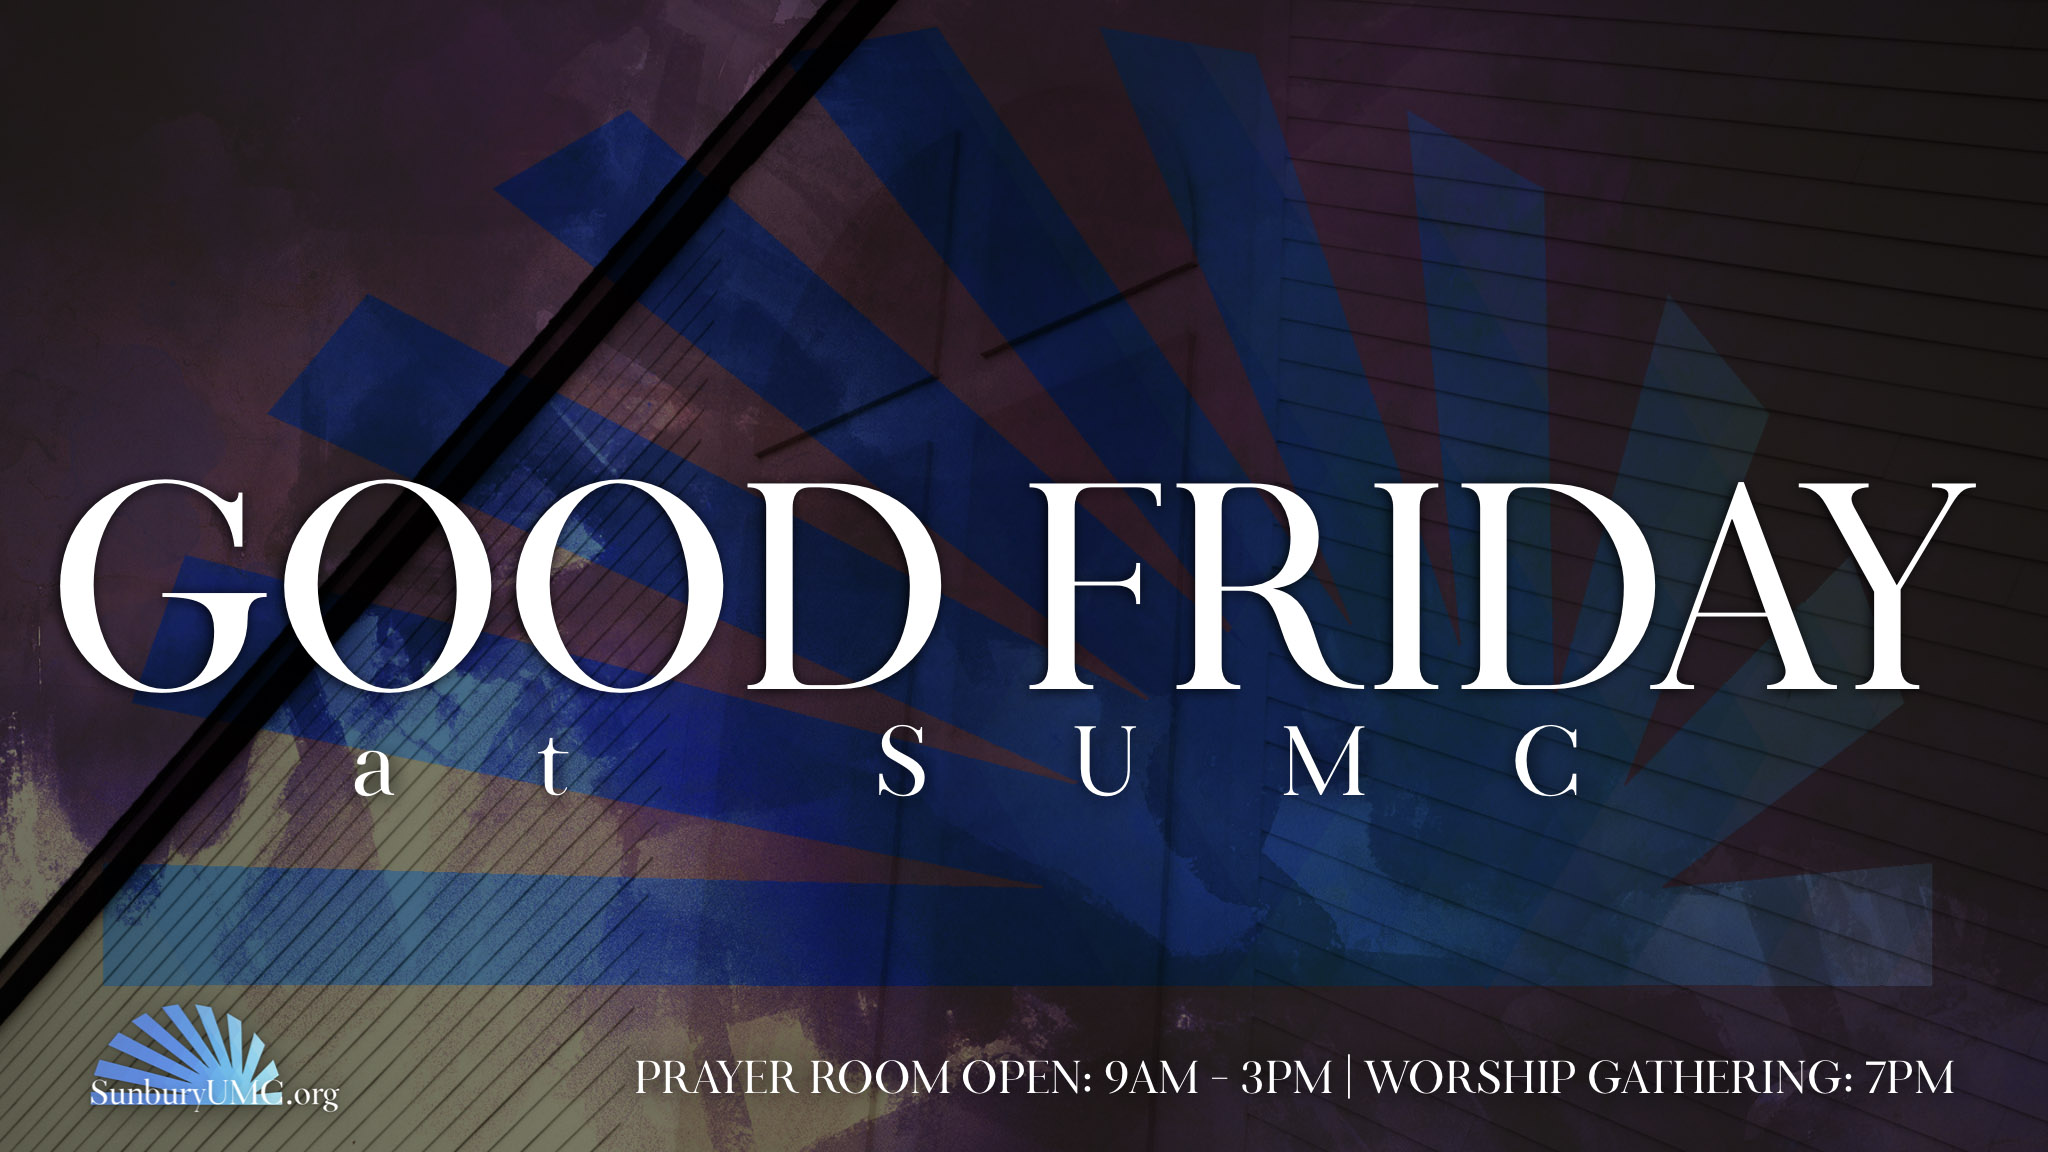 Good Friday @ SUMC — Sunbury United Methodist Church